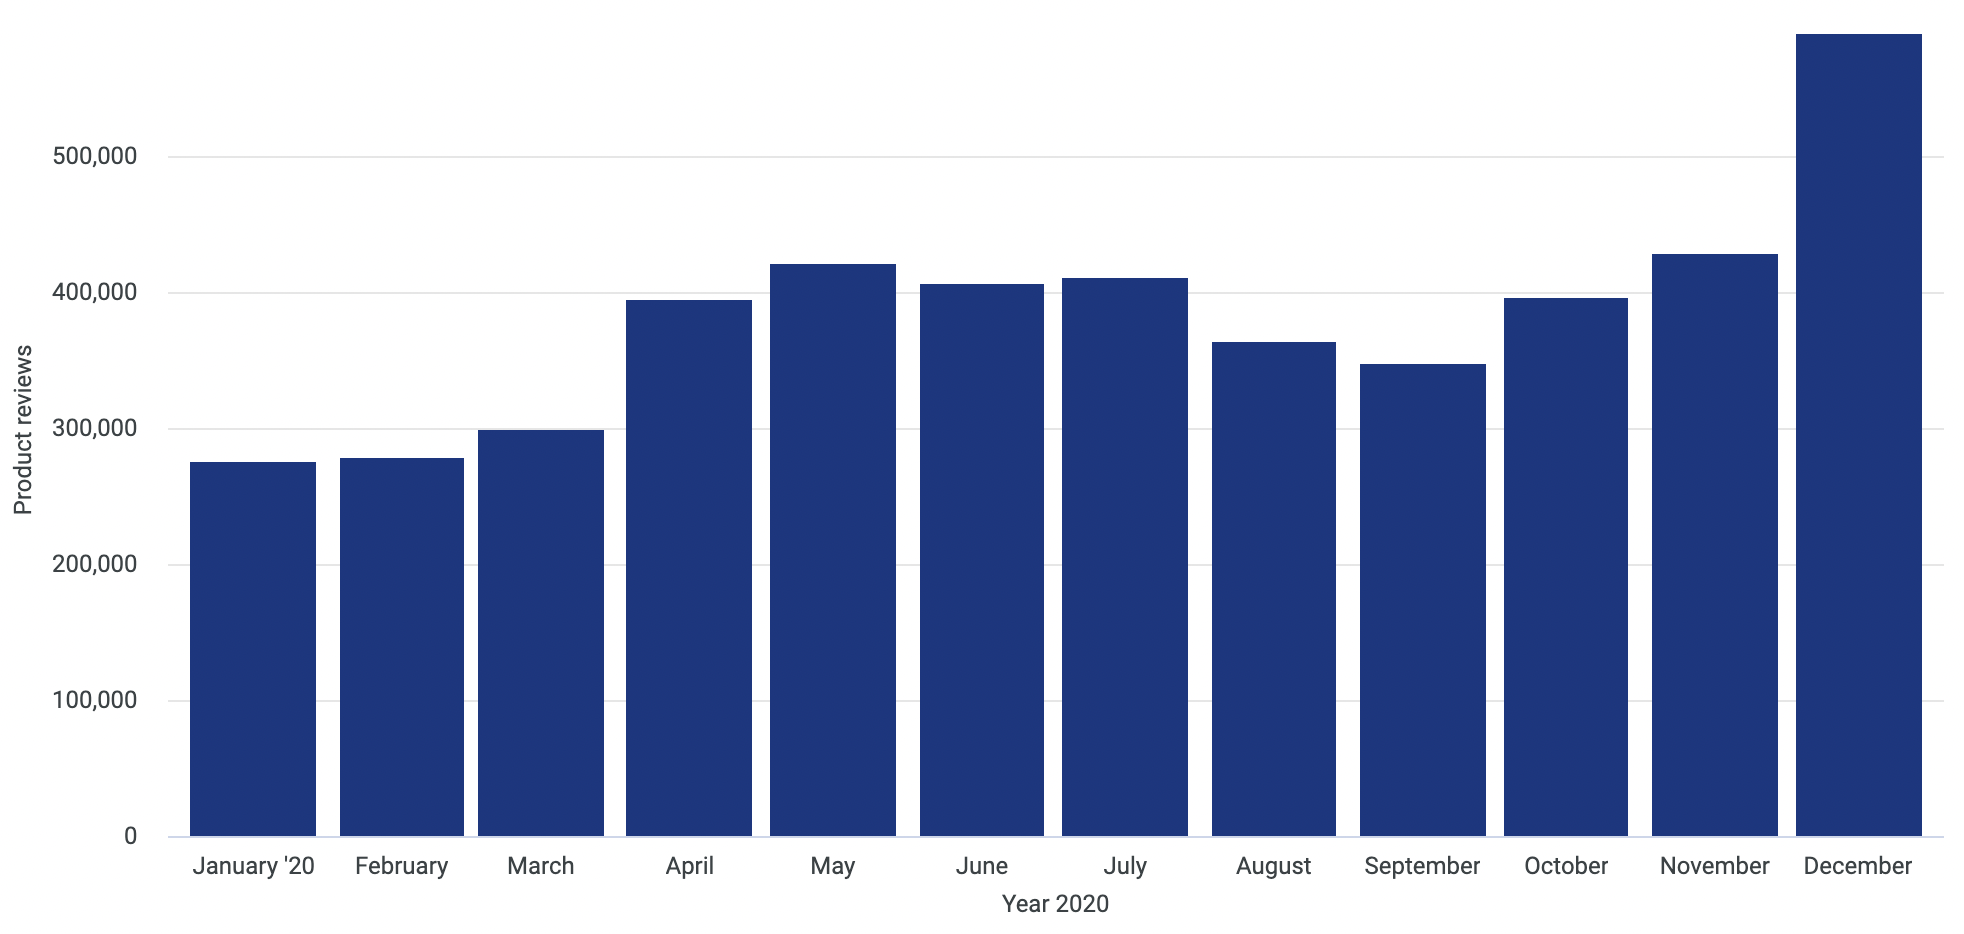 Product reviews left on Trustpilot.com between January 1st 2020 and December 31st 2020. Here, we can observe a significant increase in service reviews from October onwards.